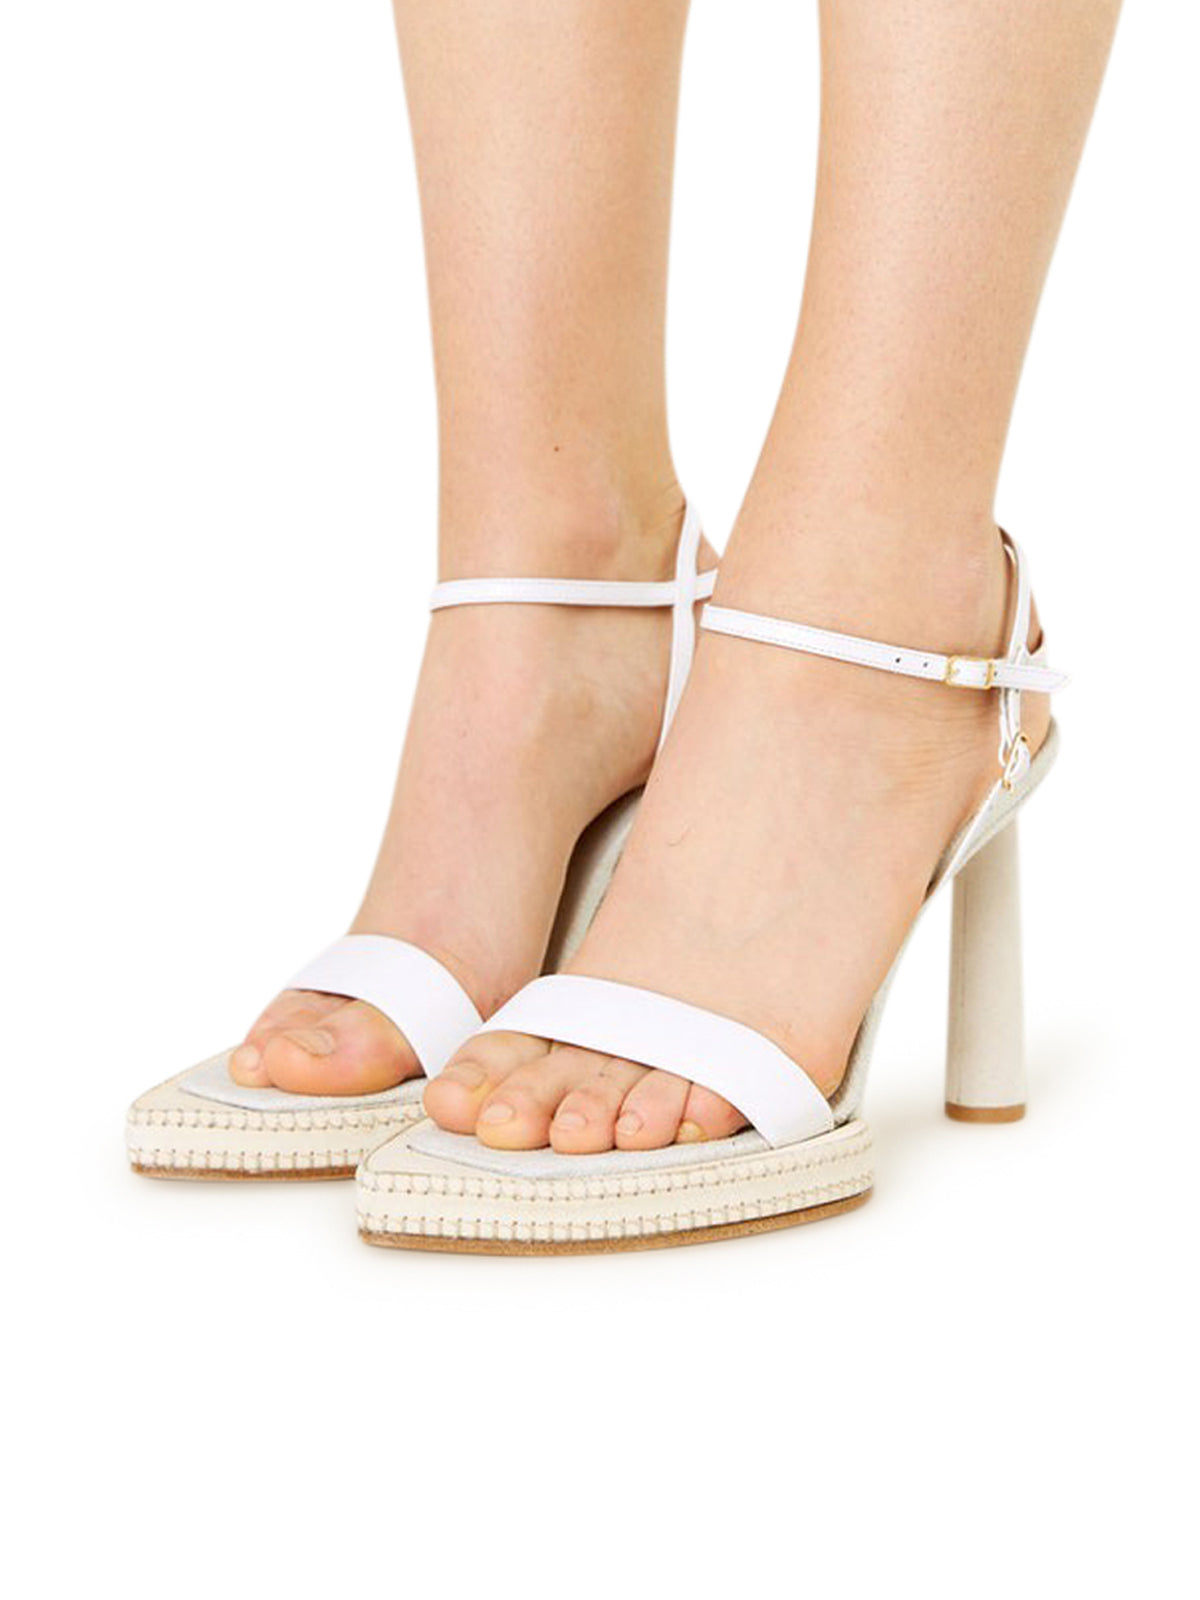 pointed-toe leather sandals